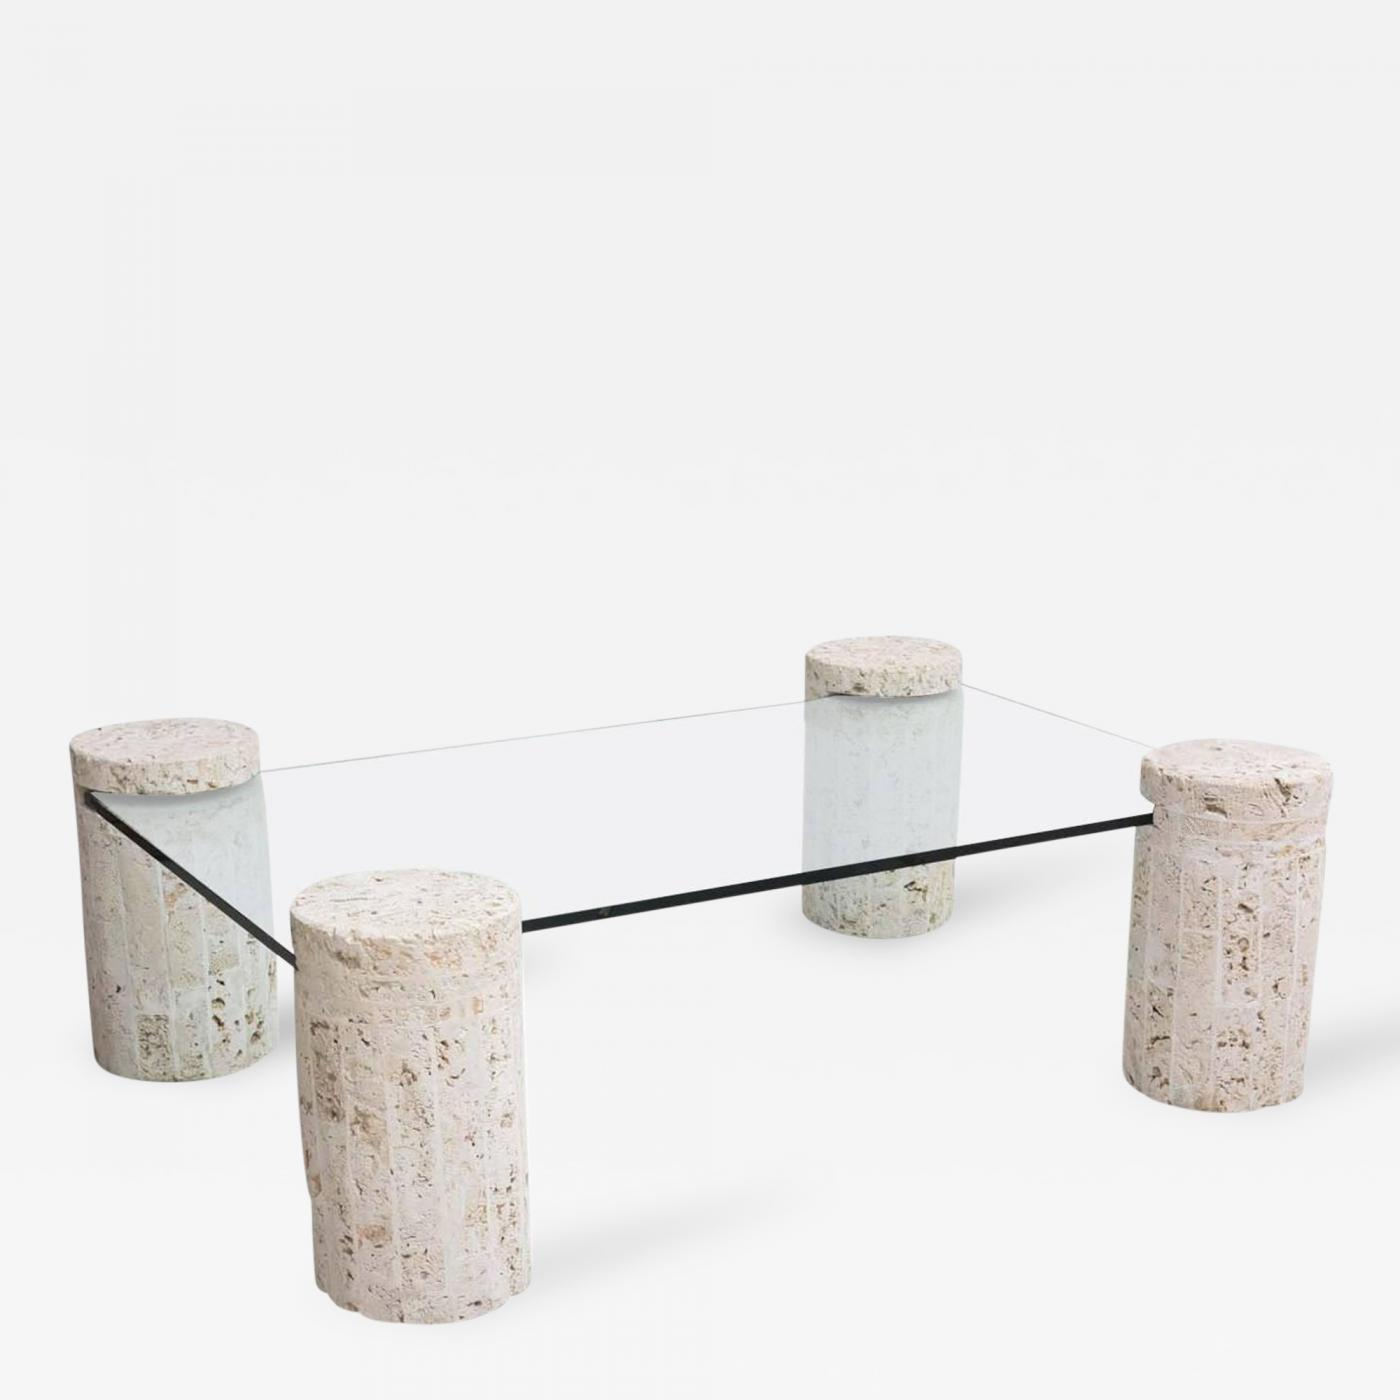 Stone And Glass Coffee Tables: Coral Stone Coffee Table With Glass Top